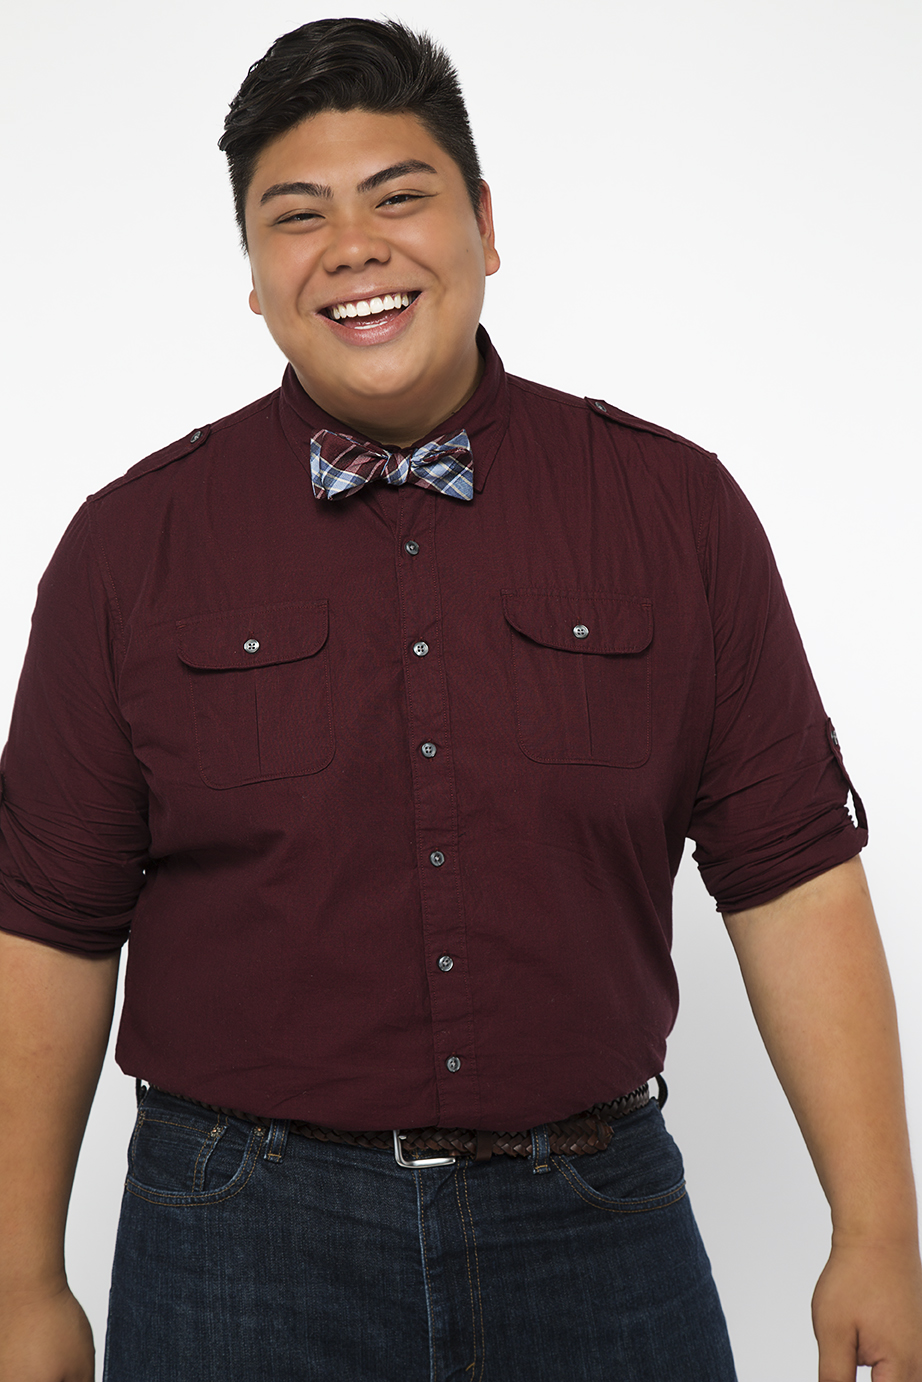 Name: Joe Caigoy Birthdate: April 1989 Favorite Food: Lumpia & Pancit Bihon Parents Originally From: Iloilo & Manila Joe Caigoy is the big cuddly bear of the group! He is nicknamed that because his voice has so much power that can only be matched by his cute and colorful personality, not to mention his adorable smile. Not many people know that he was a part of the 2009 ICCA championship team, Mt. Sac's Fermata Nowhere, alongside with Sing Off champion Avi Kaplan. Joe was recently studying Music Education at Michigan State University prior to competing on The #Singoff.